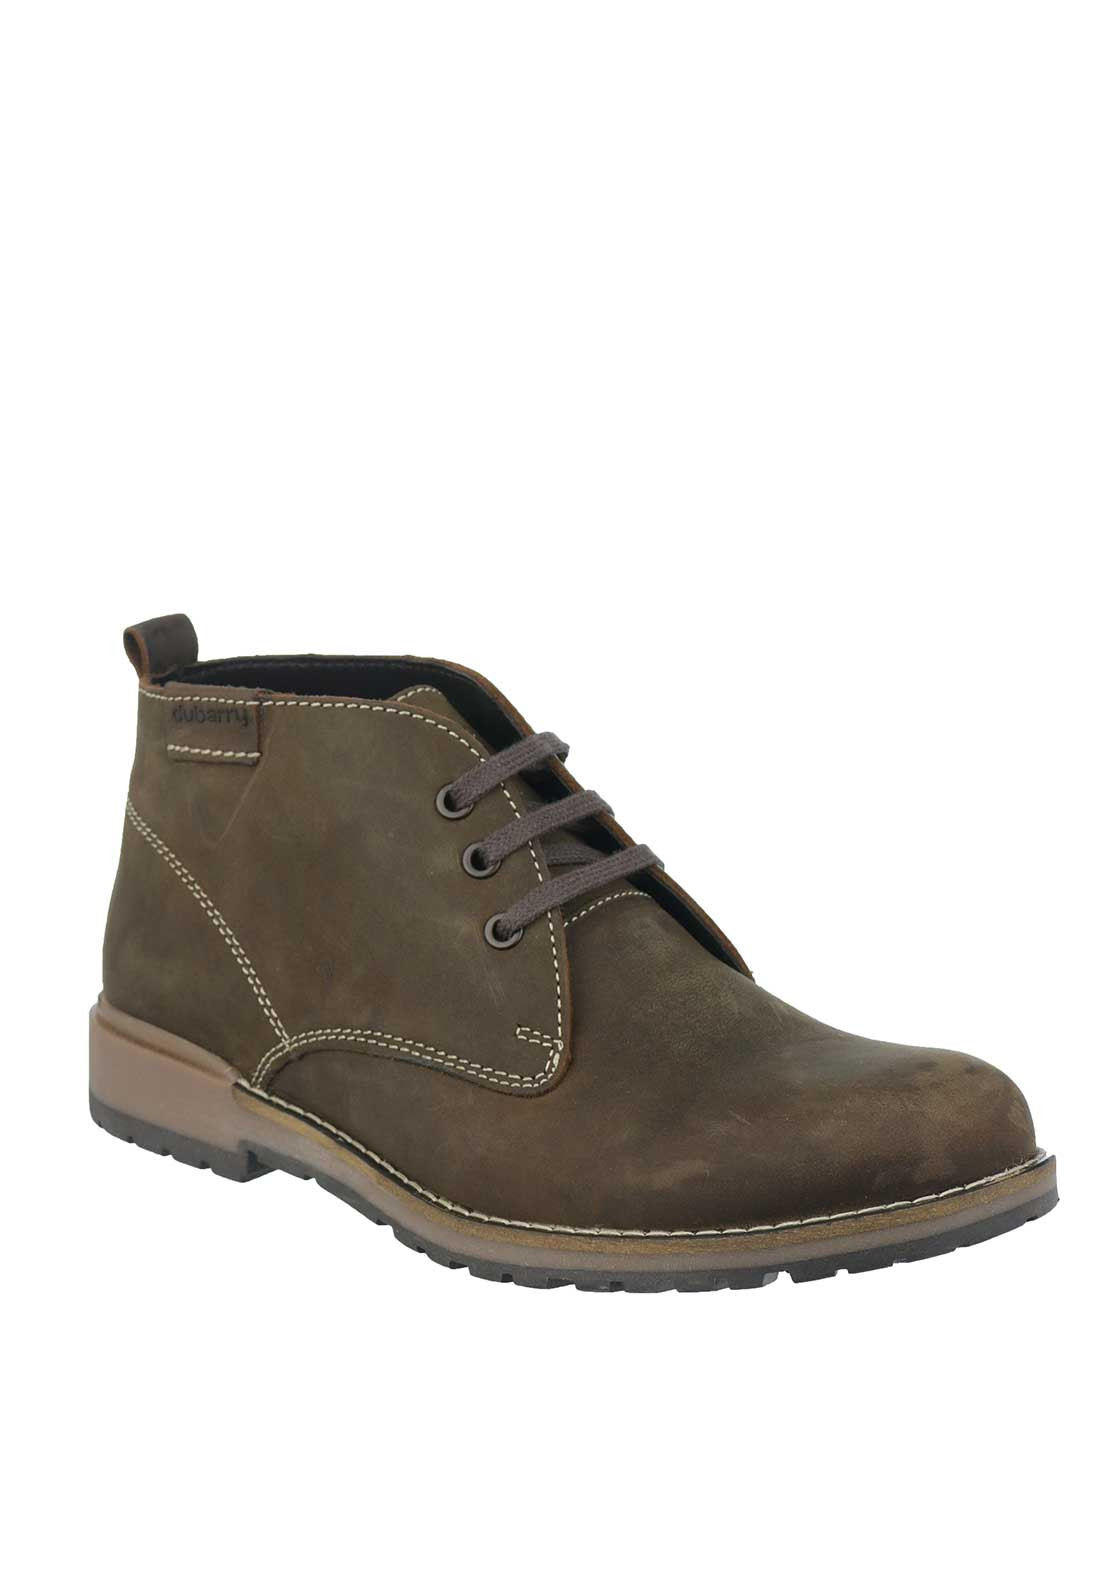 Dubarry Mens Samson Lace-Up Leather Boot, Brown